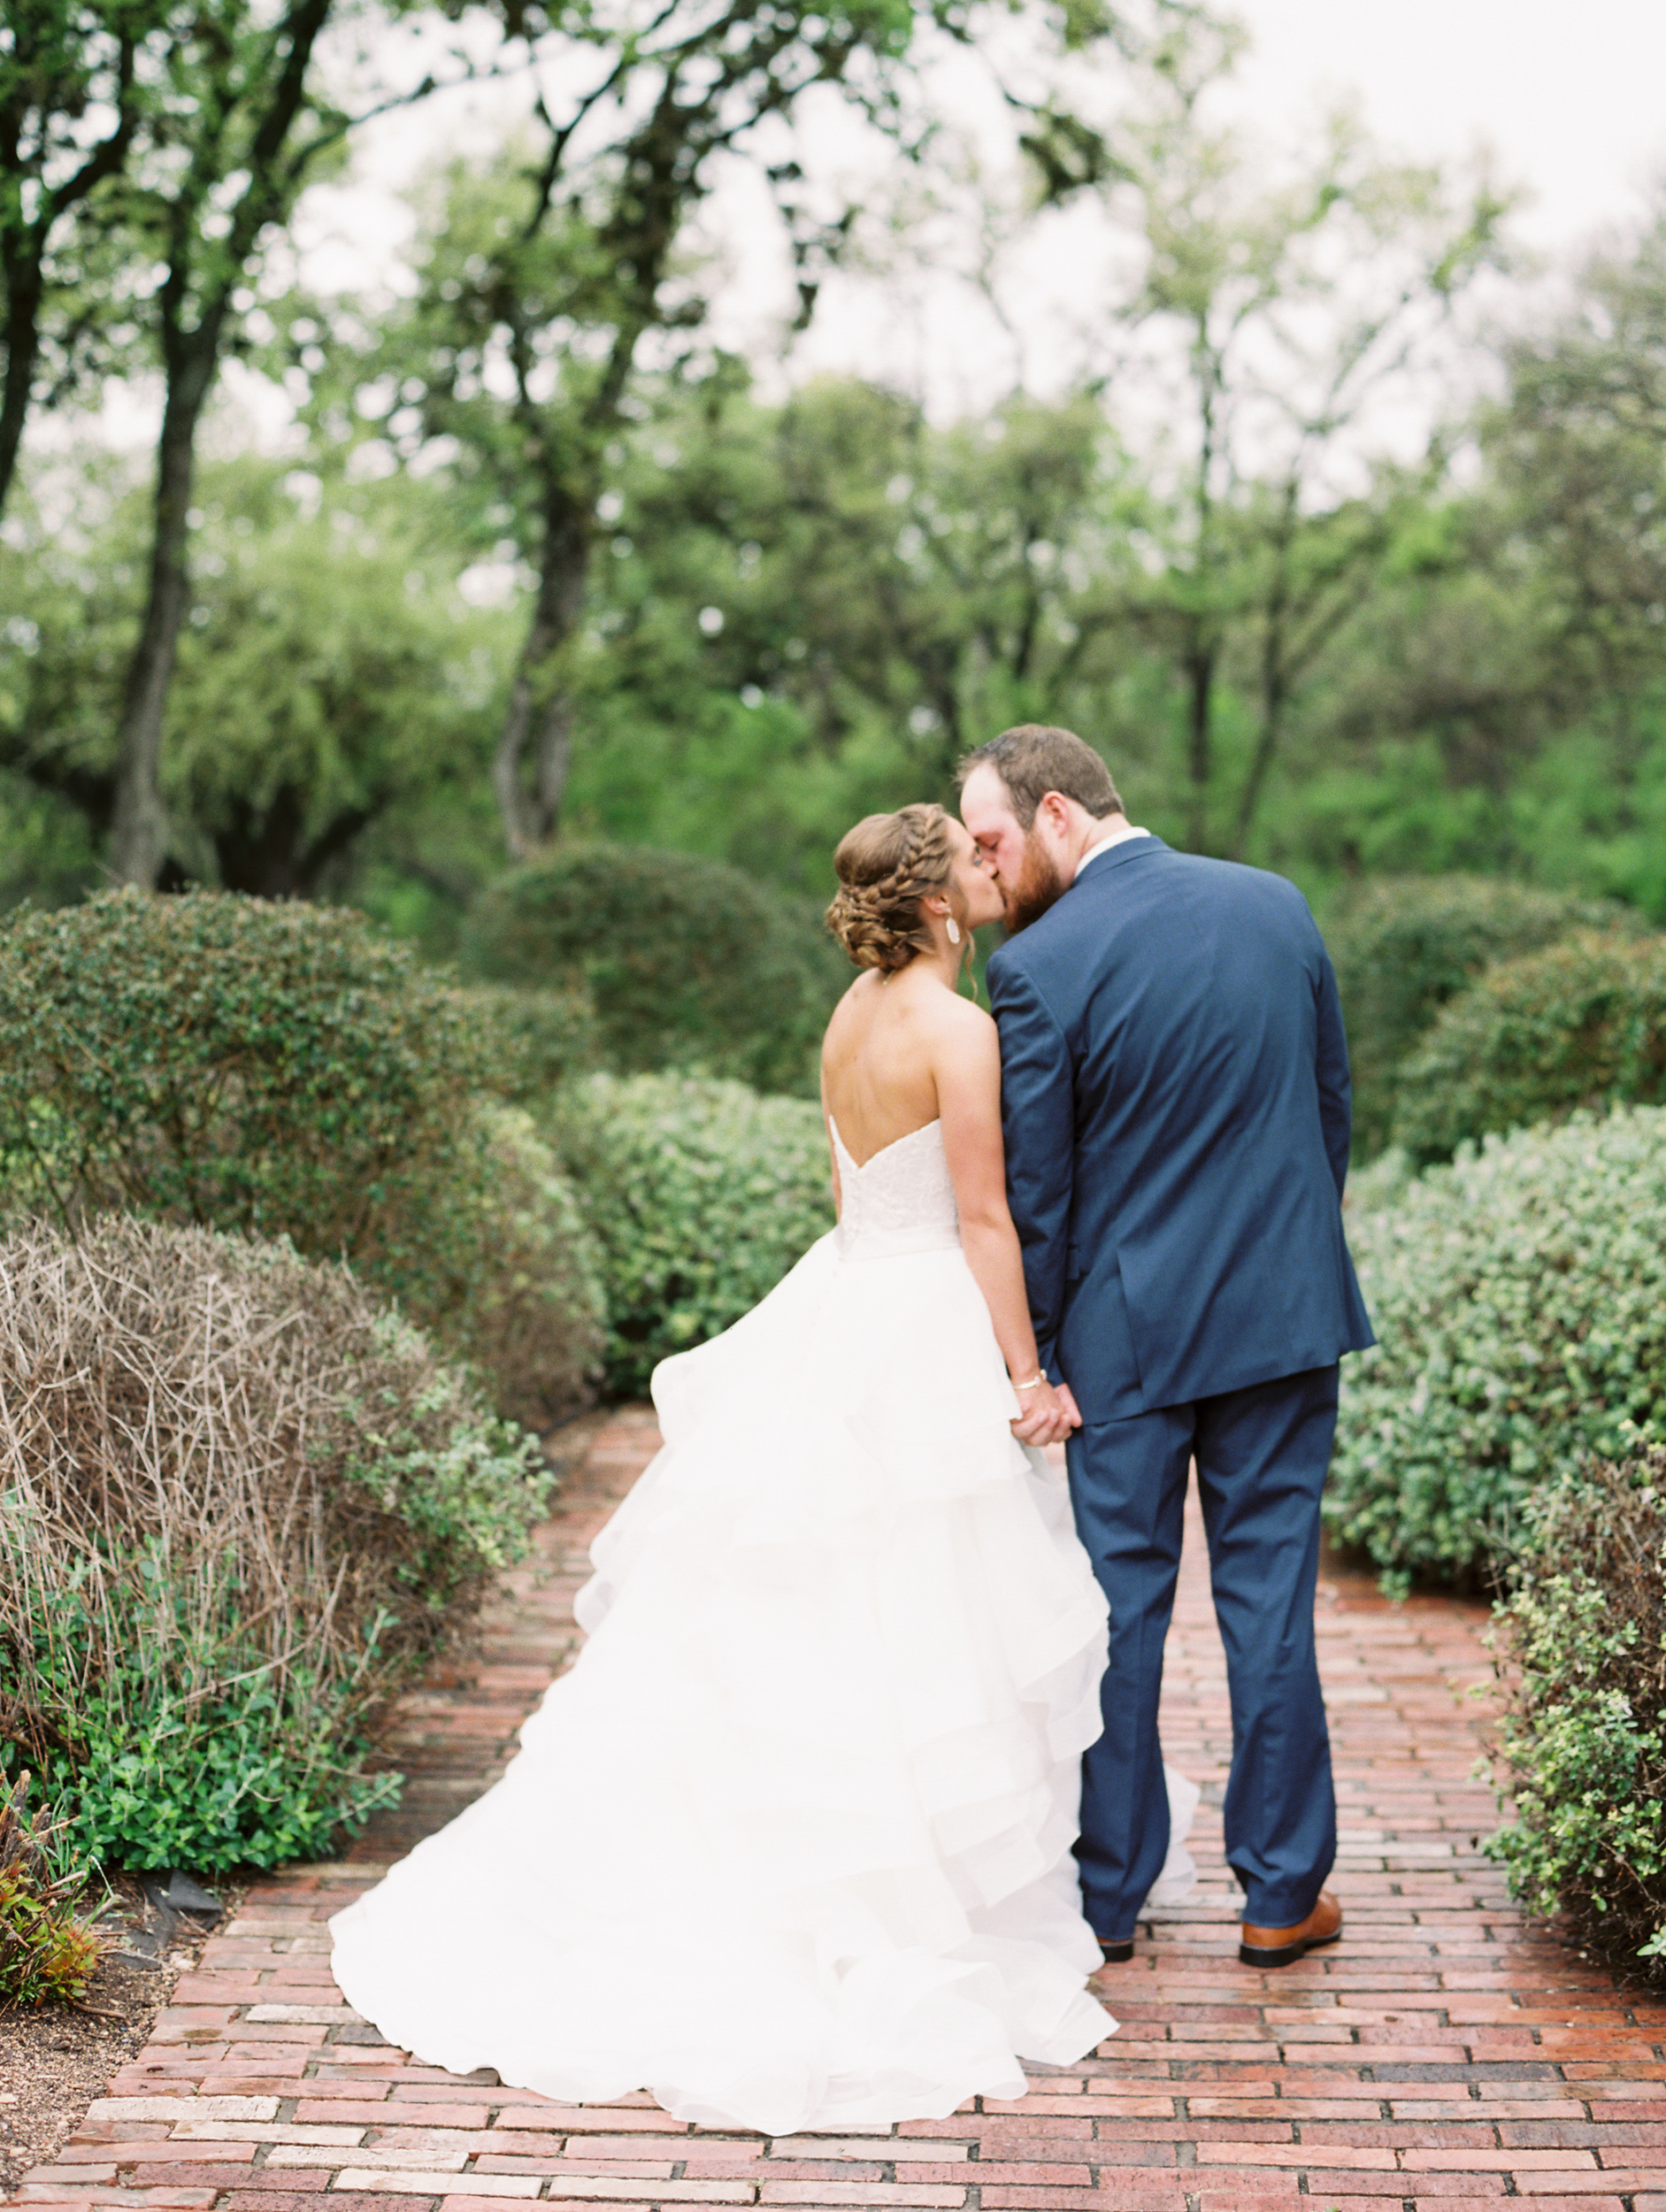 Hill Country Spring Wedding at Red Bud Hall | Austin Wedding Photographer | Film Wedding Photographer | Britni Dean Photography | Rainy Day Wedding Inspiration | britnidean.com